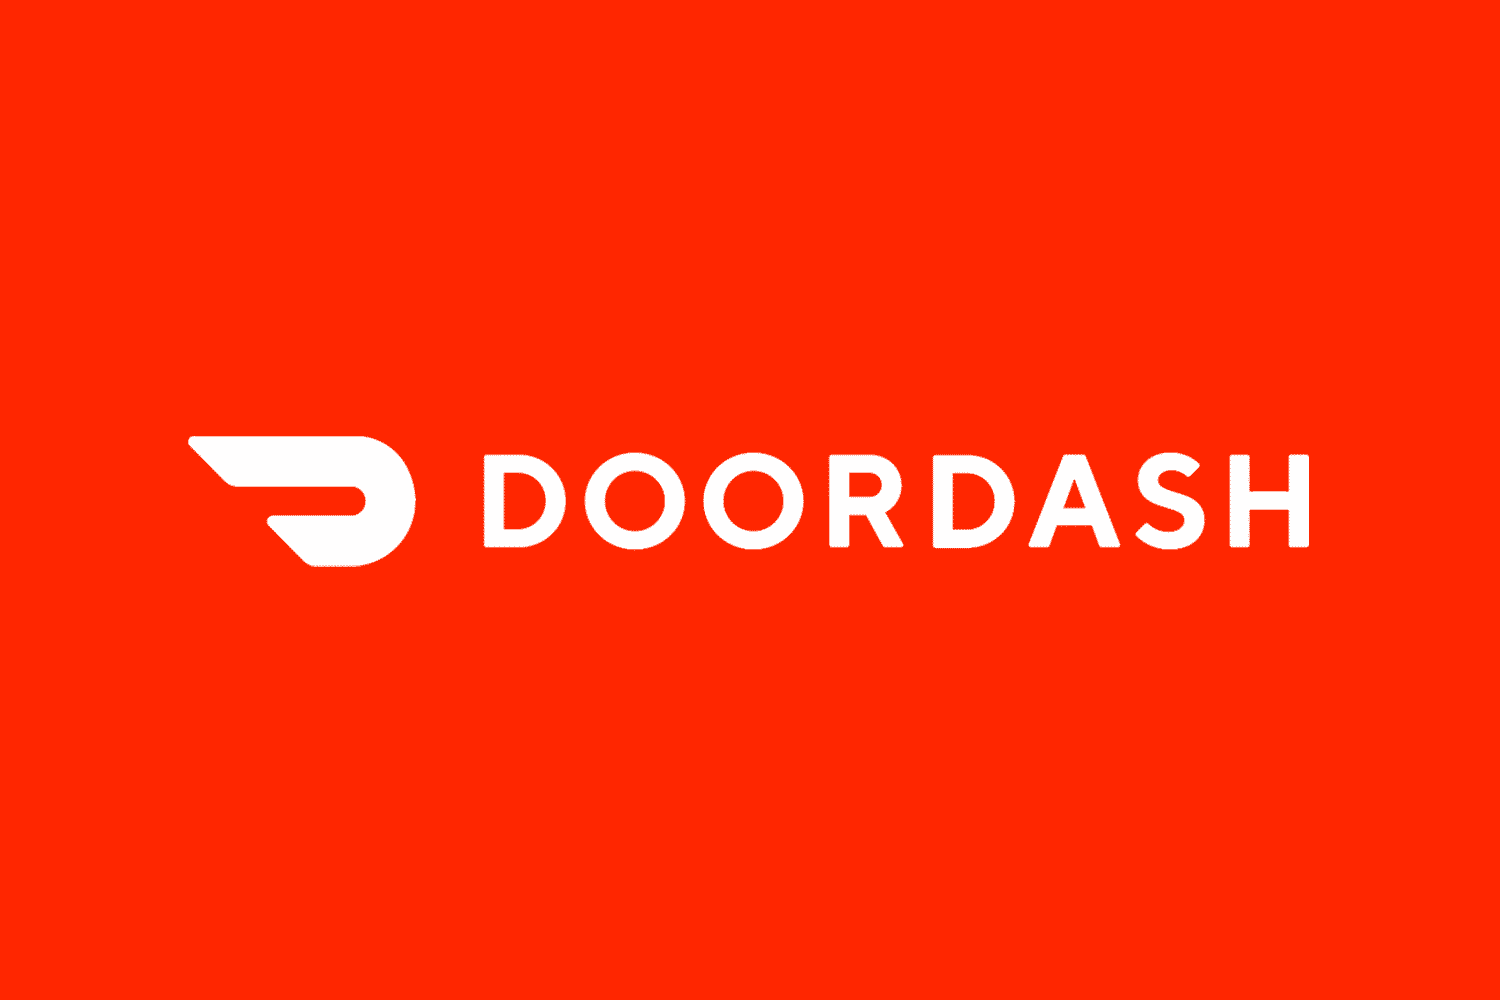 Image for article DoorDash raises $400M round, now valued at $7.1B